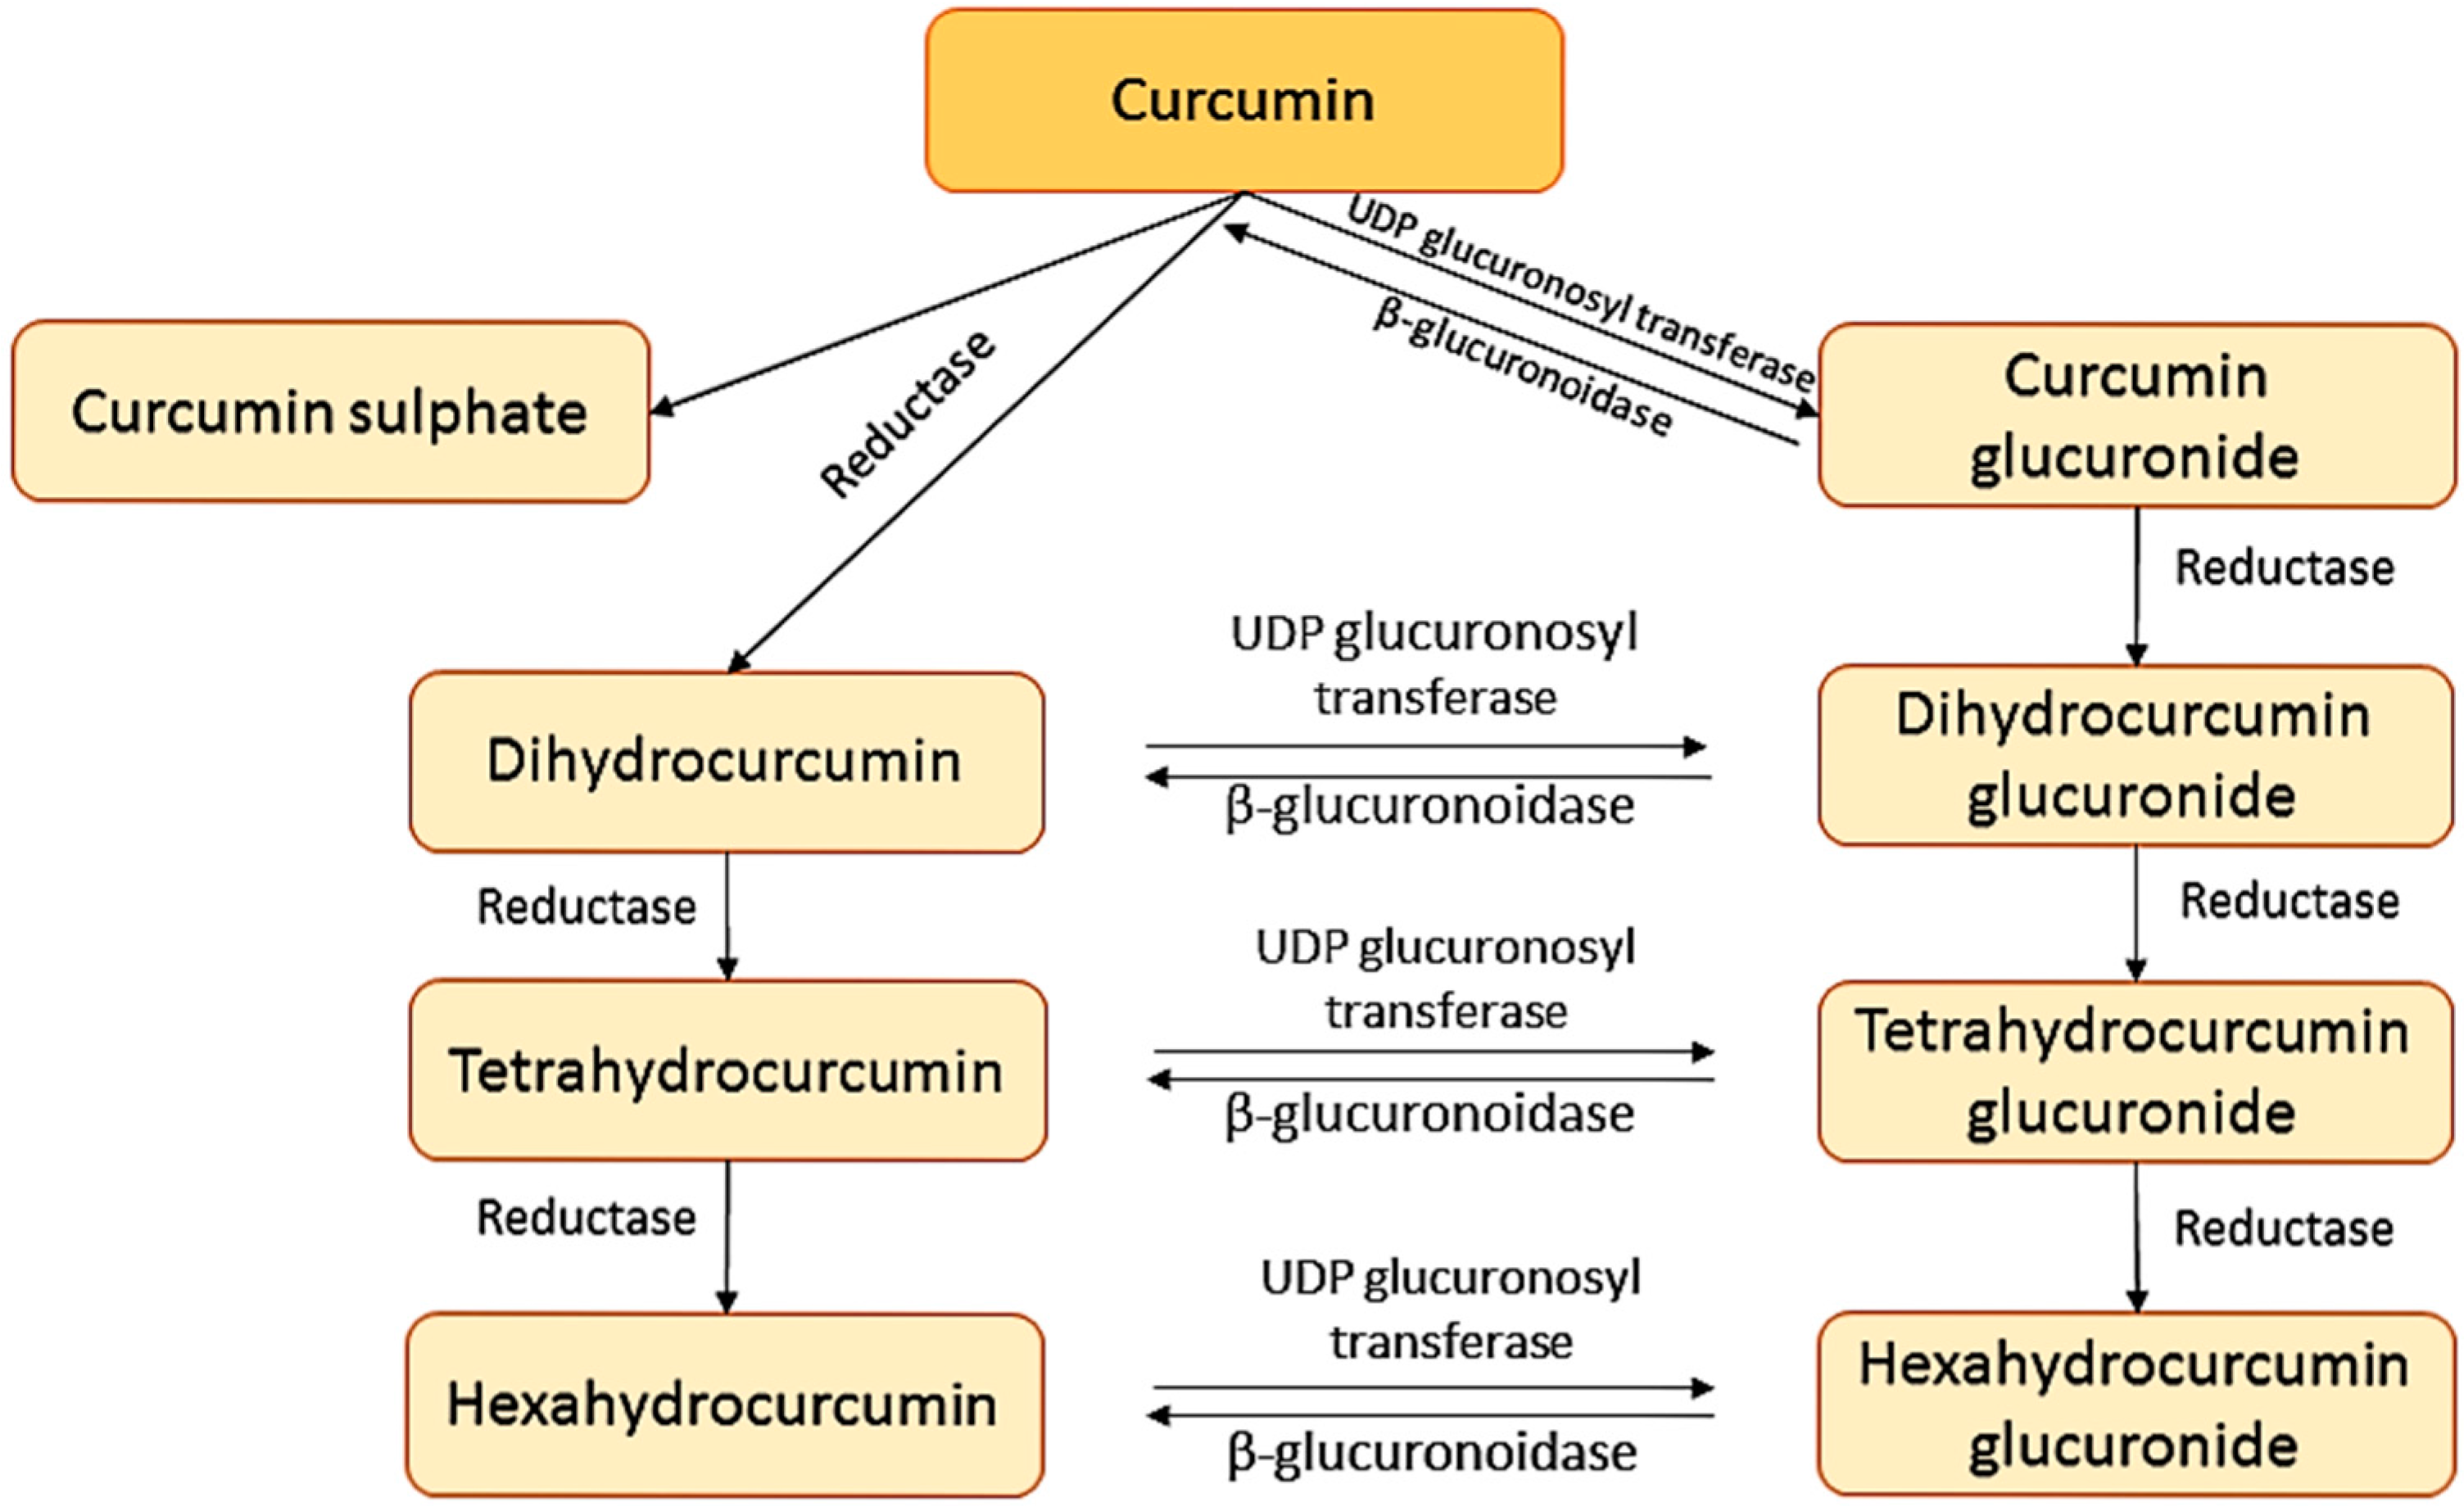 Molecules | Free Full-Text | Curcumin and Health | HTML